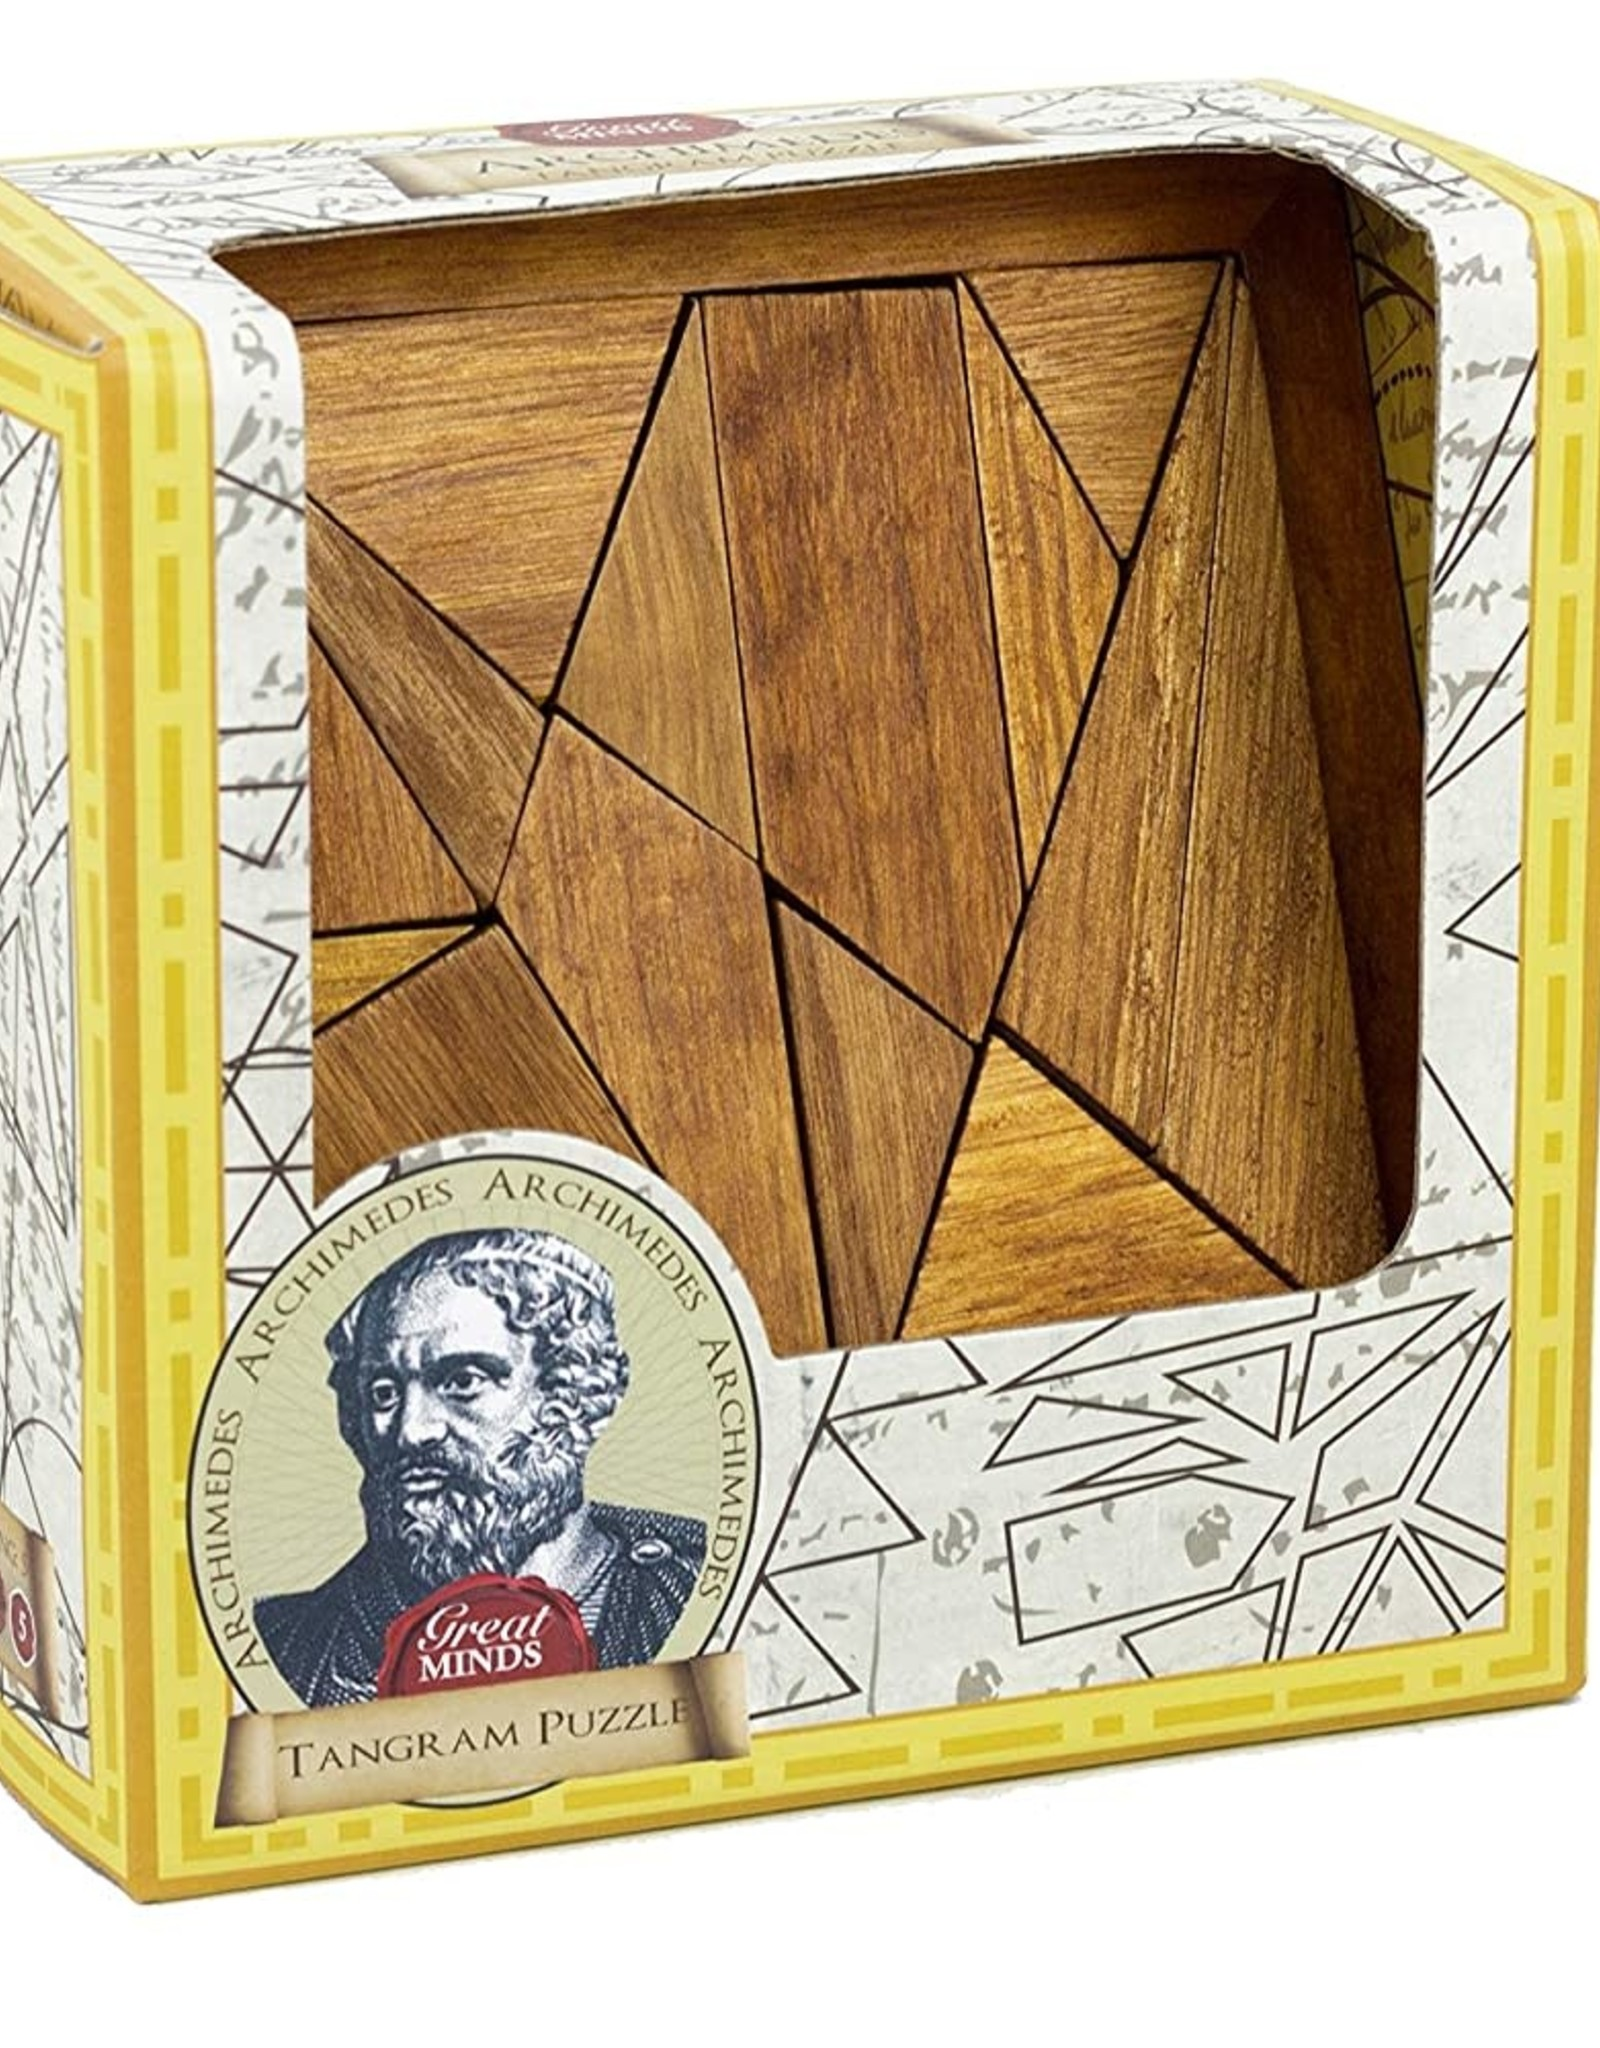 Professor Puzzle Archimedes' Tangram Wooden Puzzle